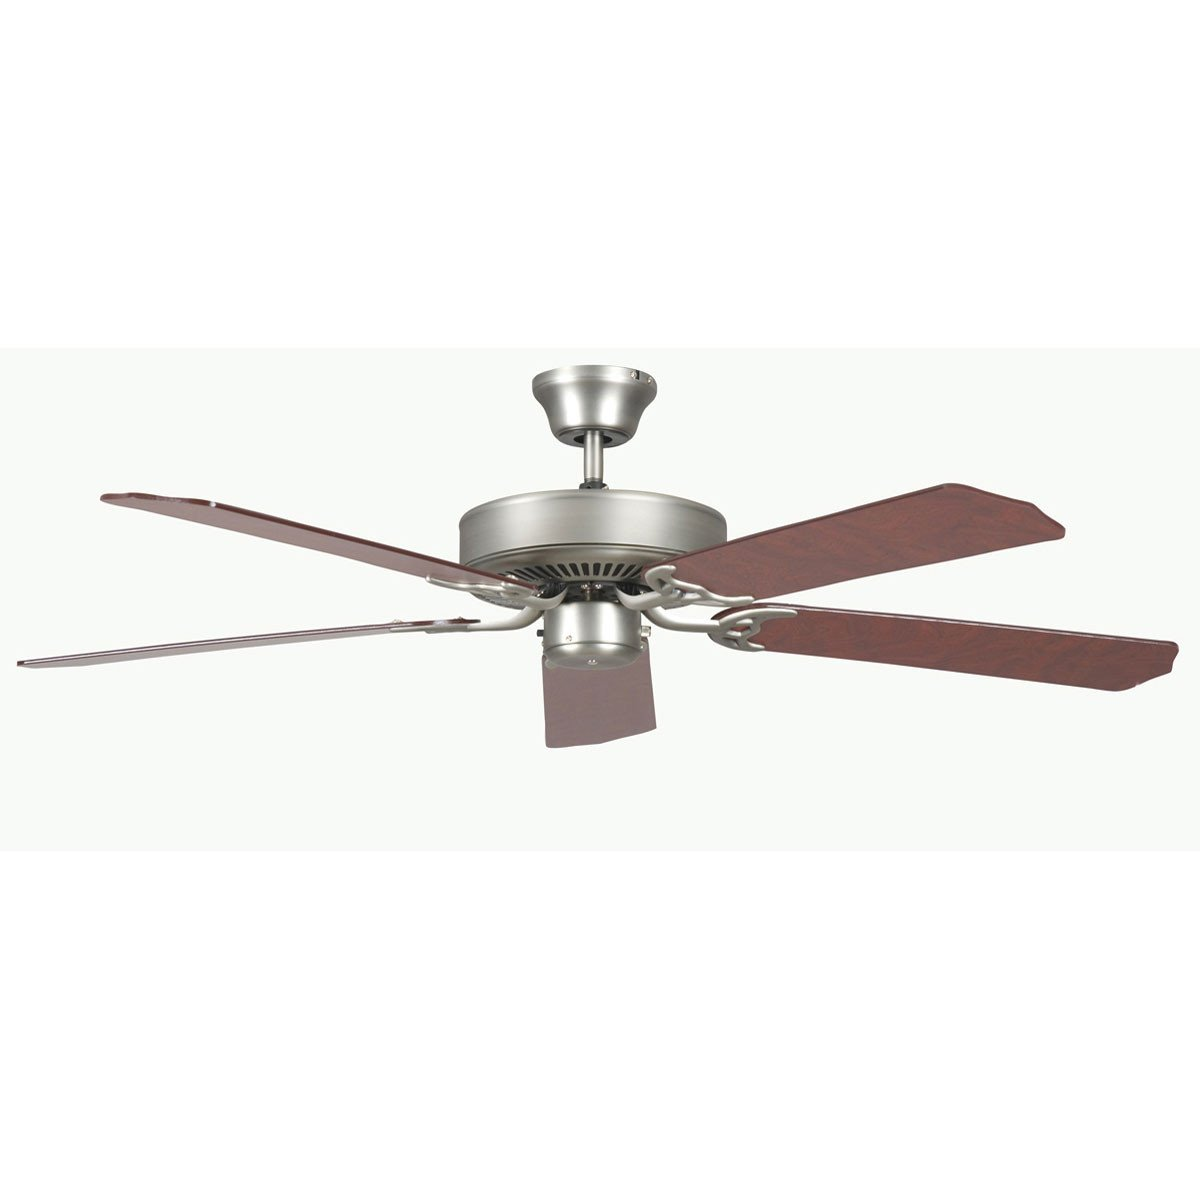 "Concord Fans 52"" Heritage Satin Nickel Simple Attractive Ceiling Fan"